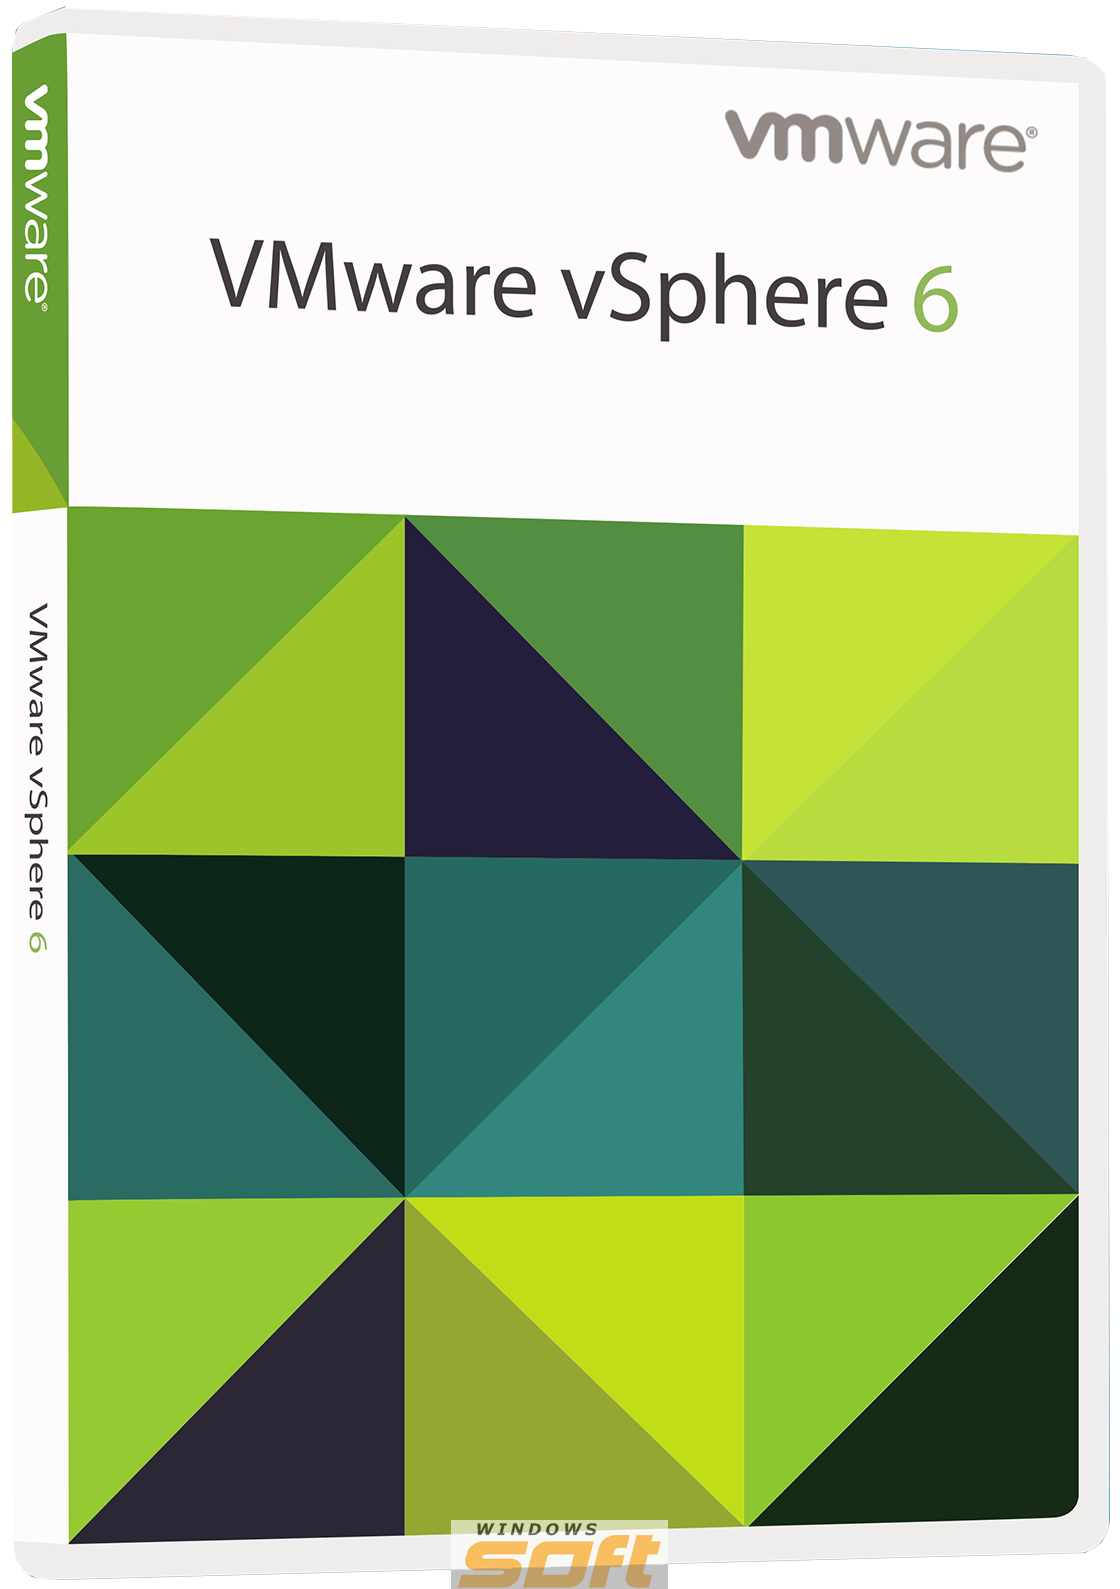 Купить Basic Support/Subscription for VMware vSphere 6 for Desktop (100 VM Pack) for 3 years VS6-DT100VM-3G-SSS-C по доступной цене